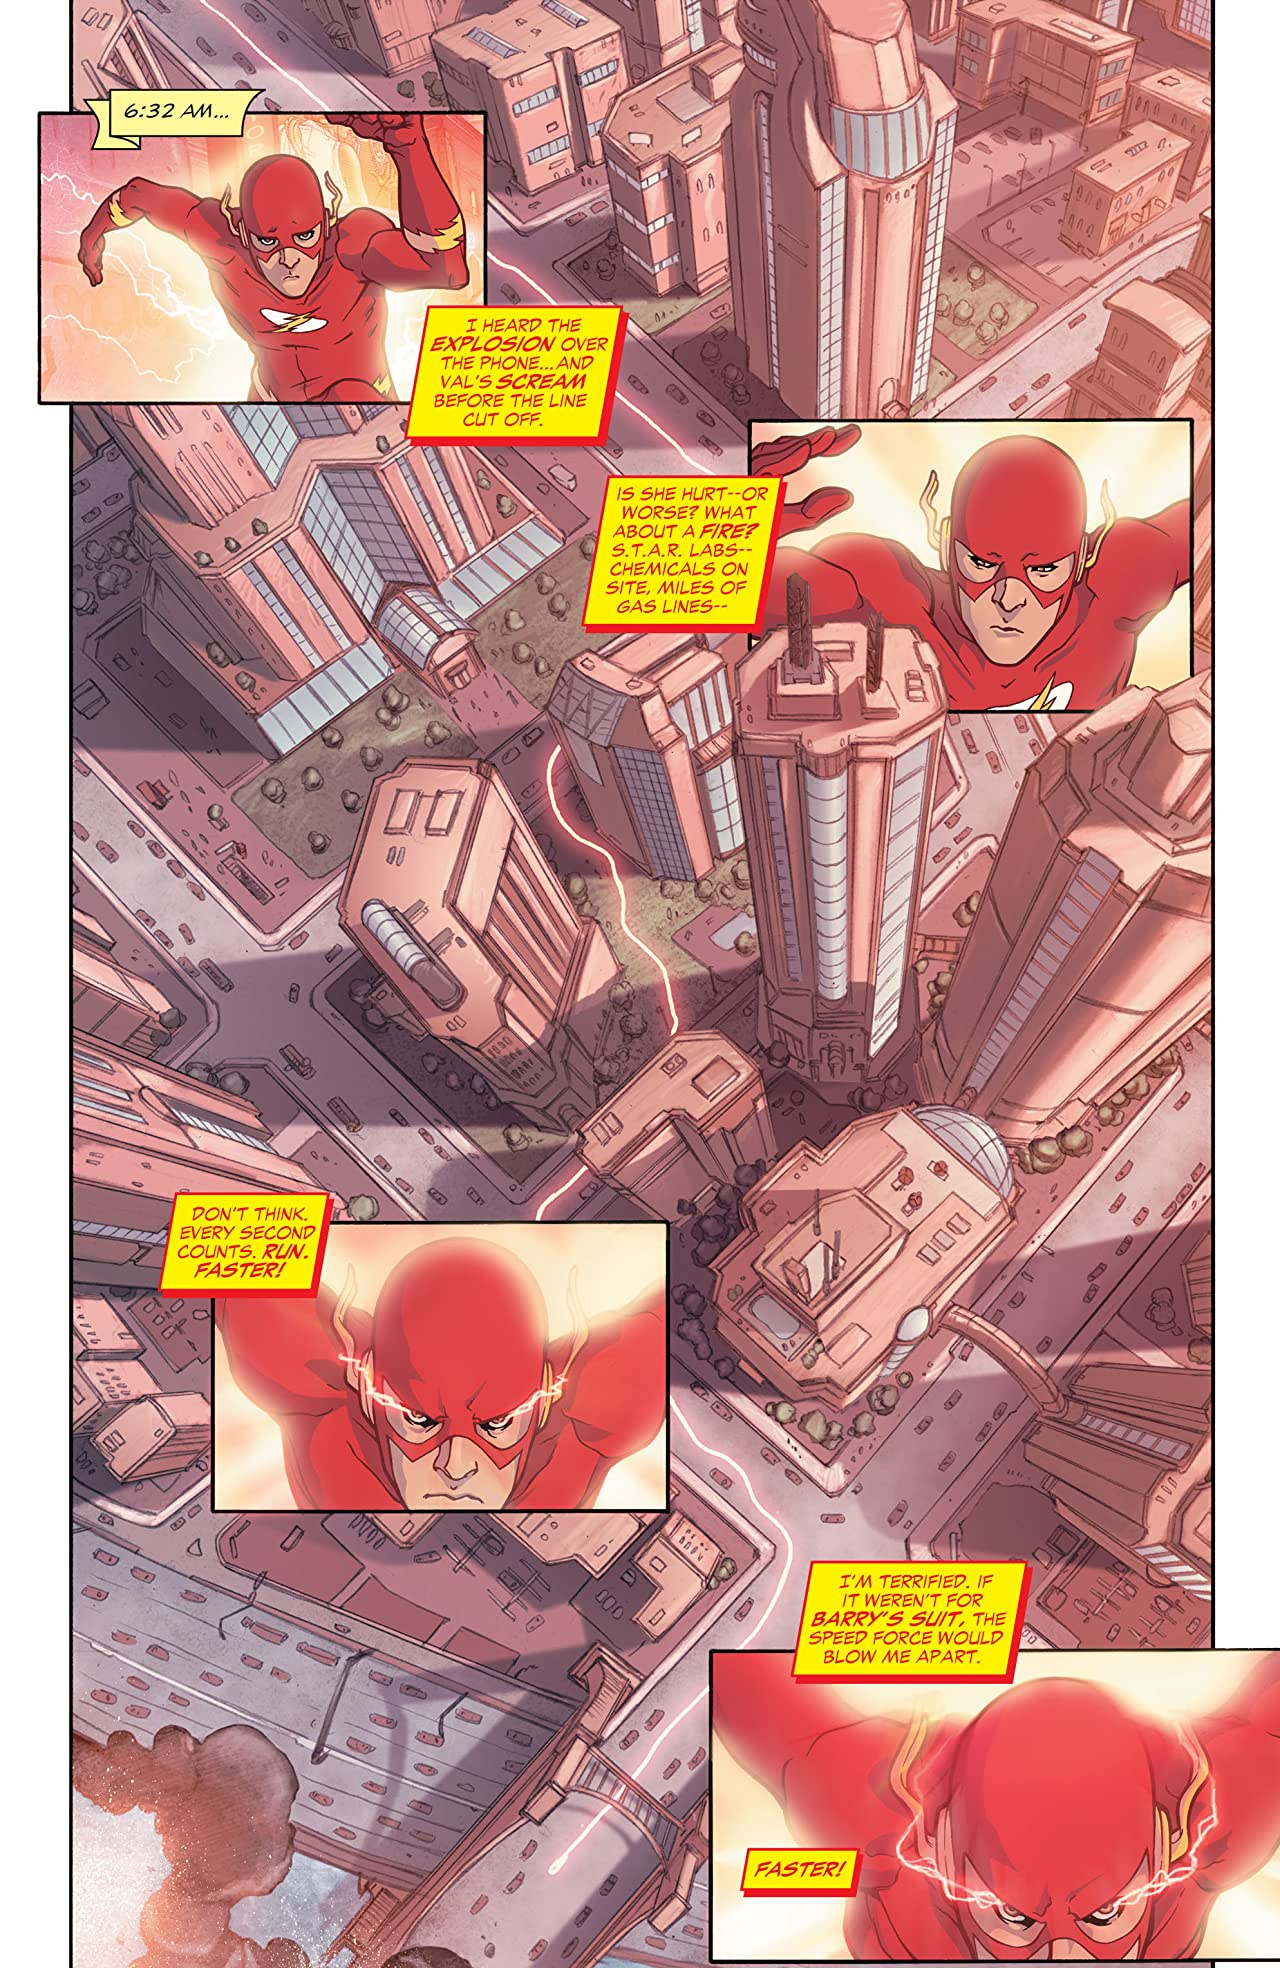 The Flash: The Fastest Man Alive (2006-2007) #3